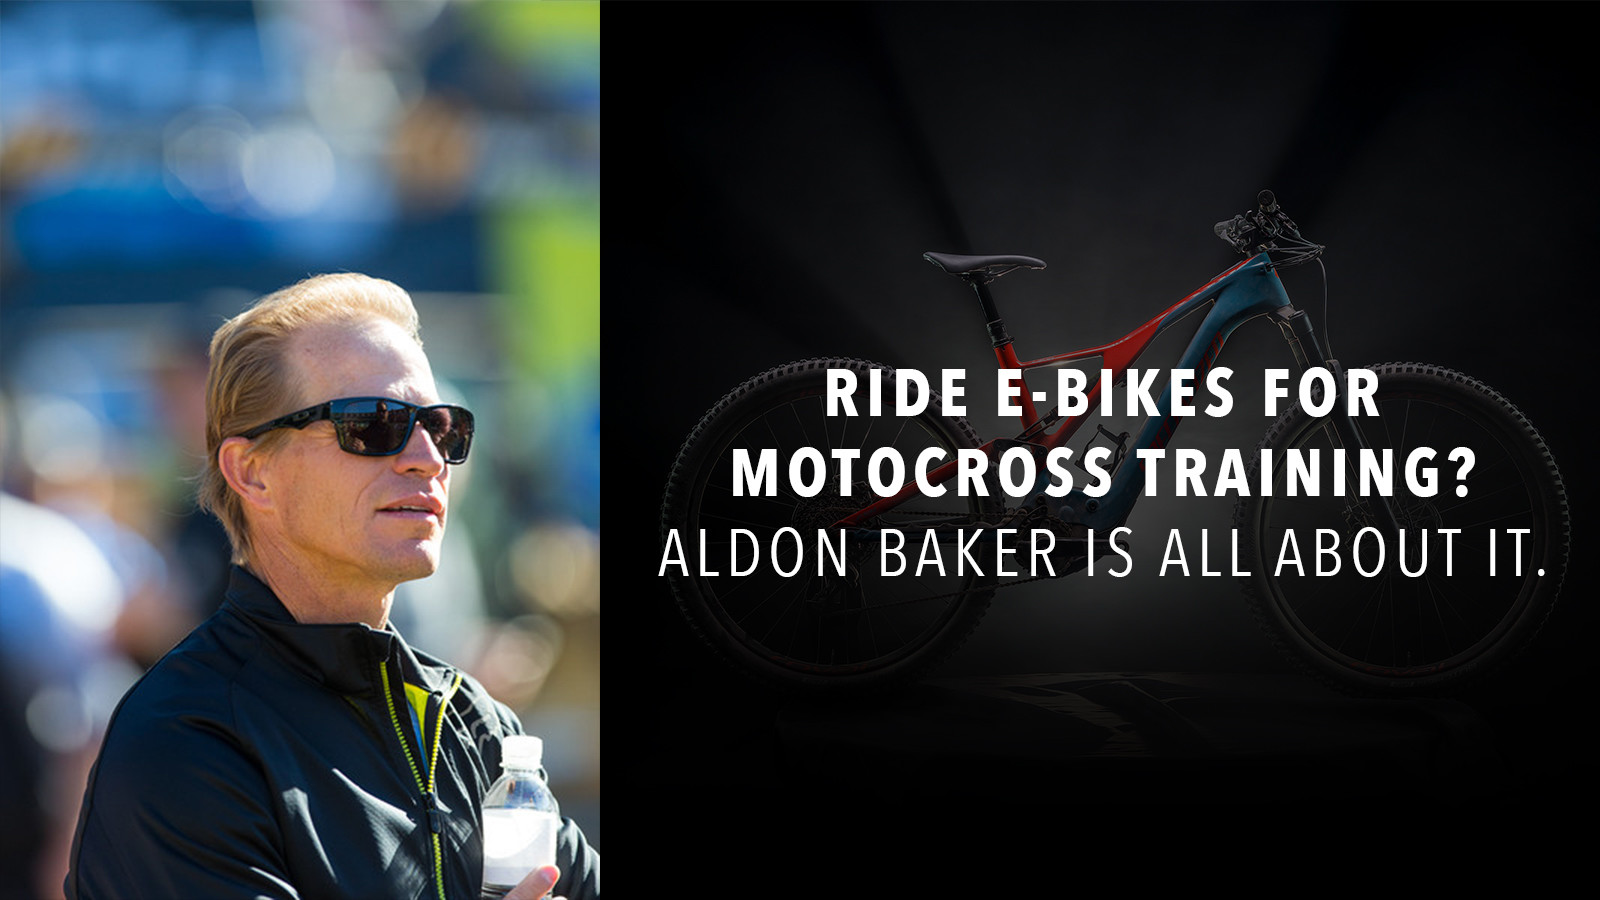 Ride E-Bikes for motocross training? Aldon Baker is all about it.